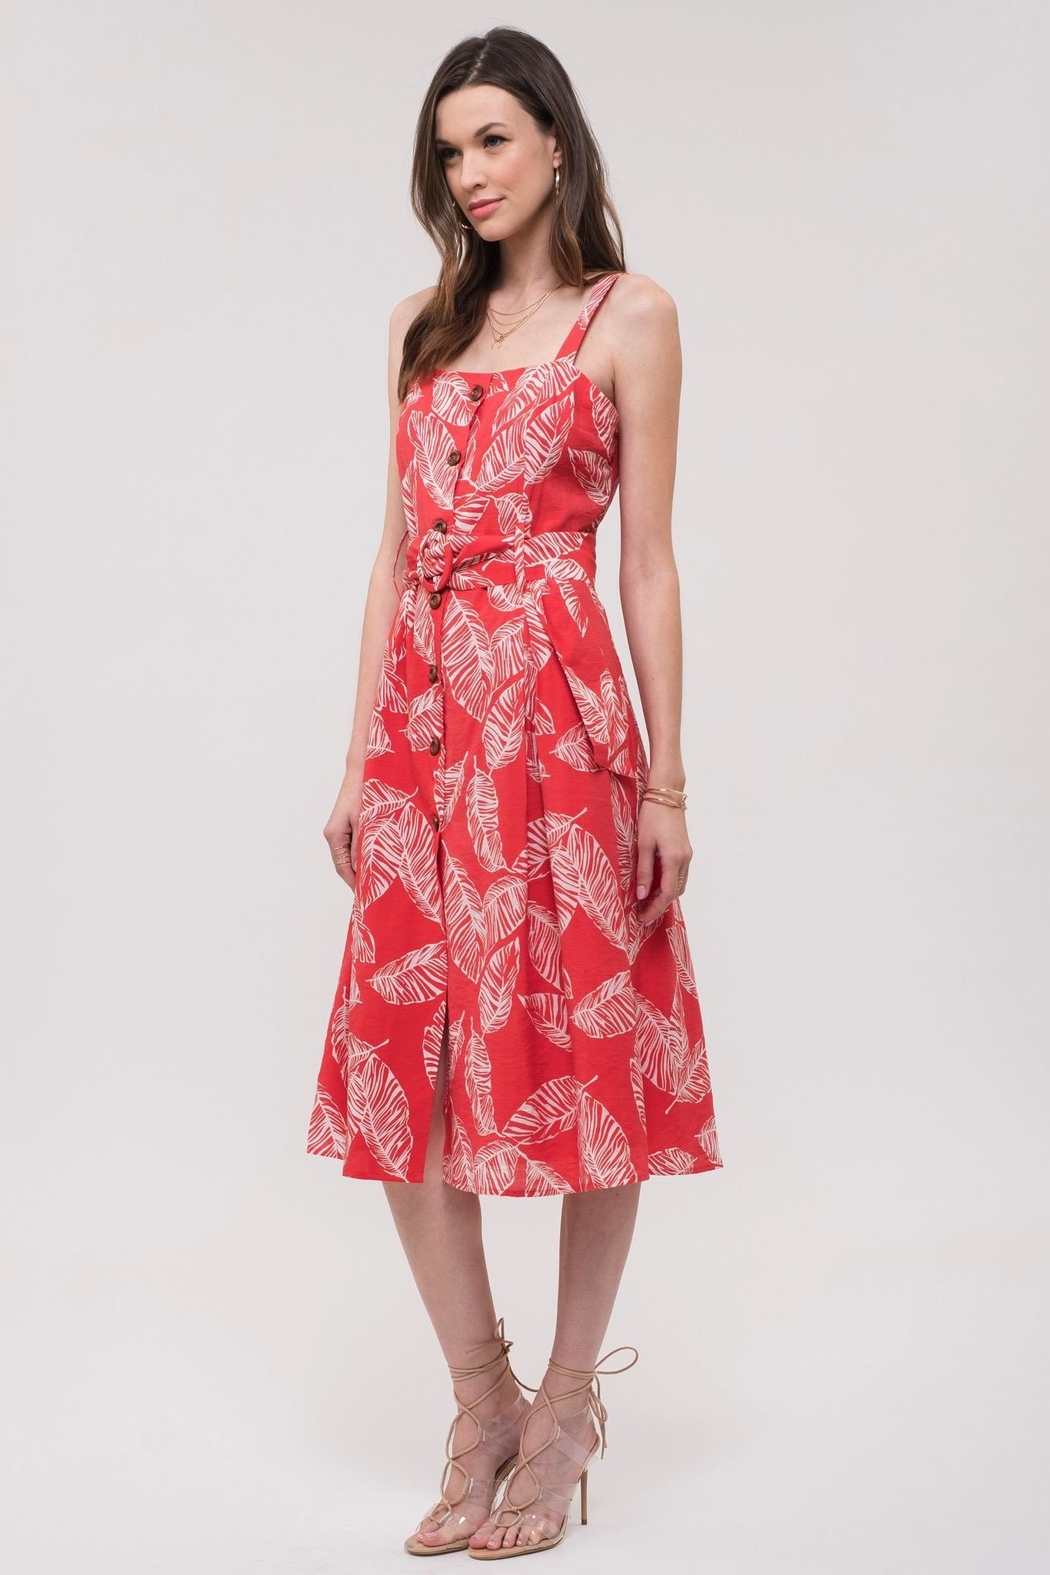 f4a343bdd63 J.O.A. Printed Sun Dress from Wallingford by The Dressing Room ...